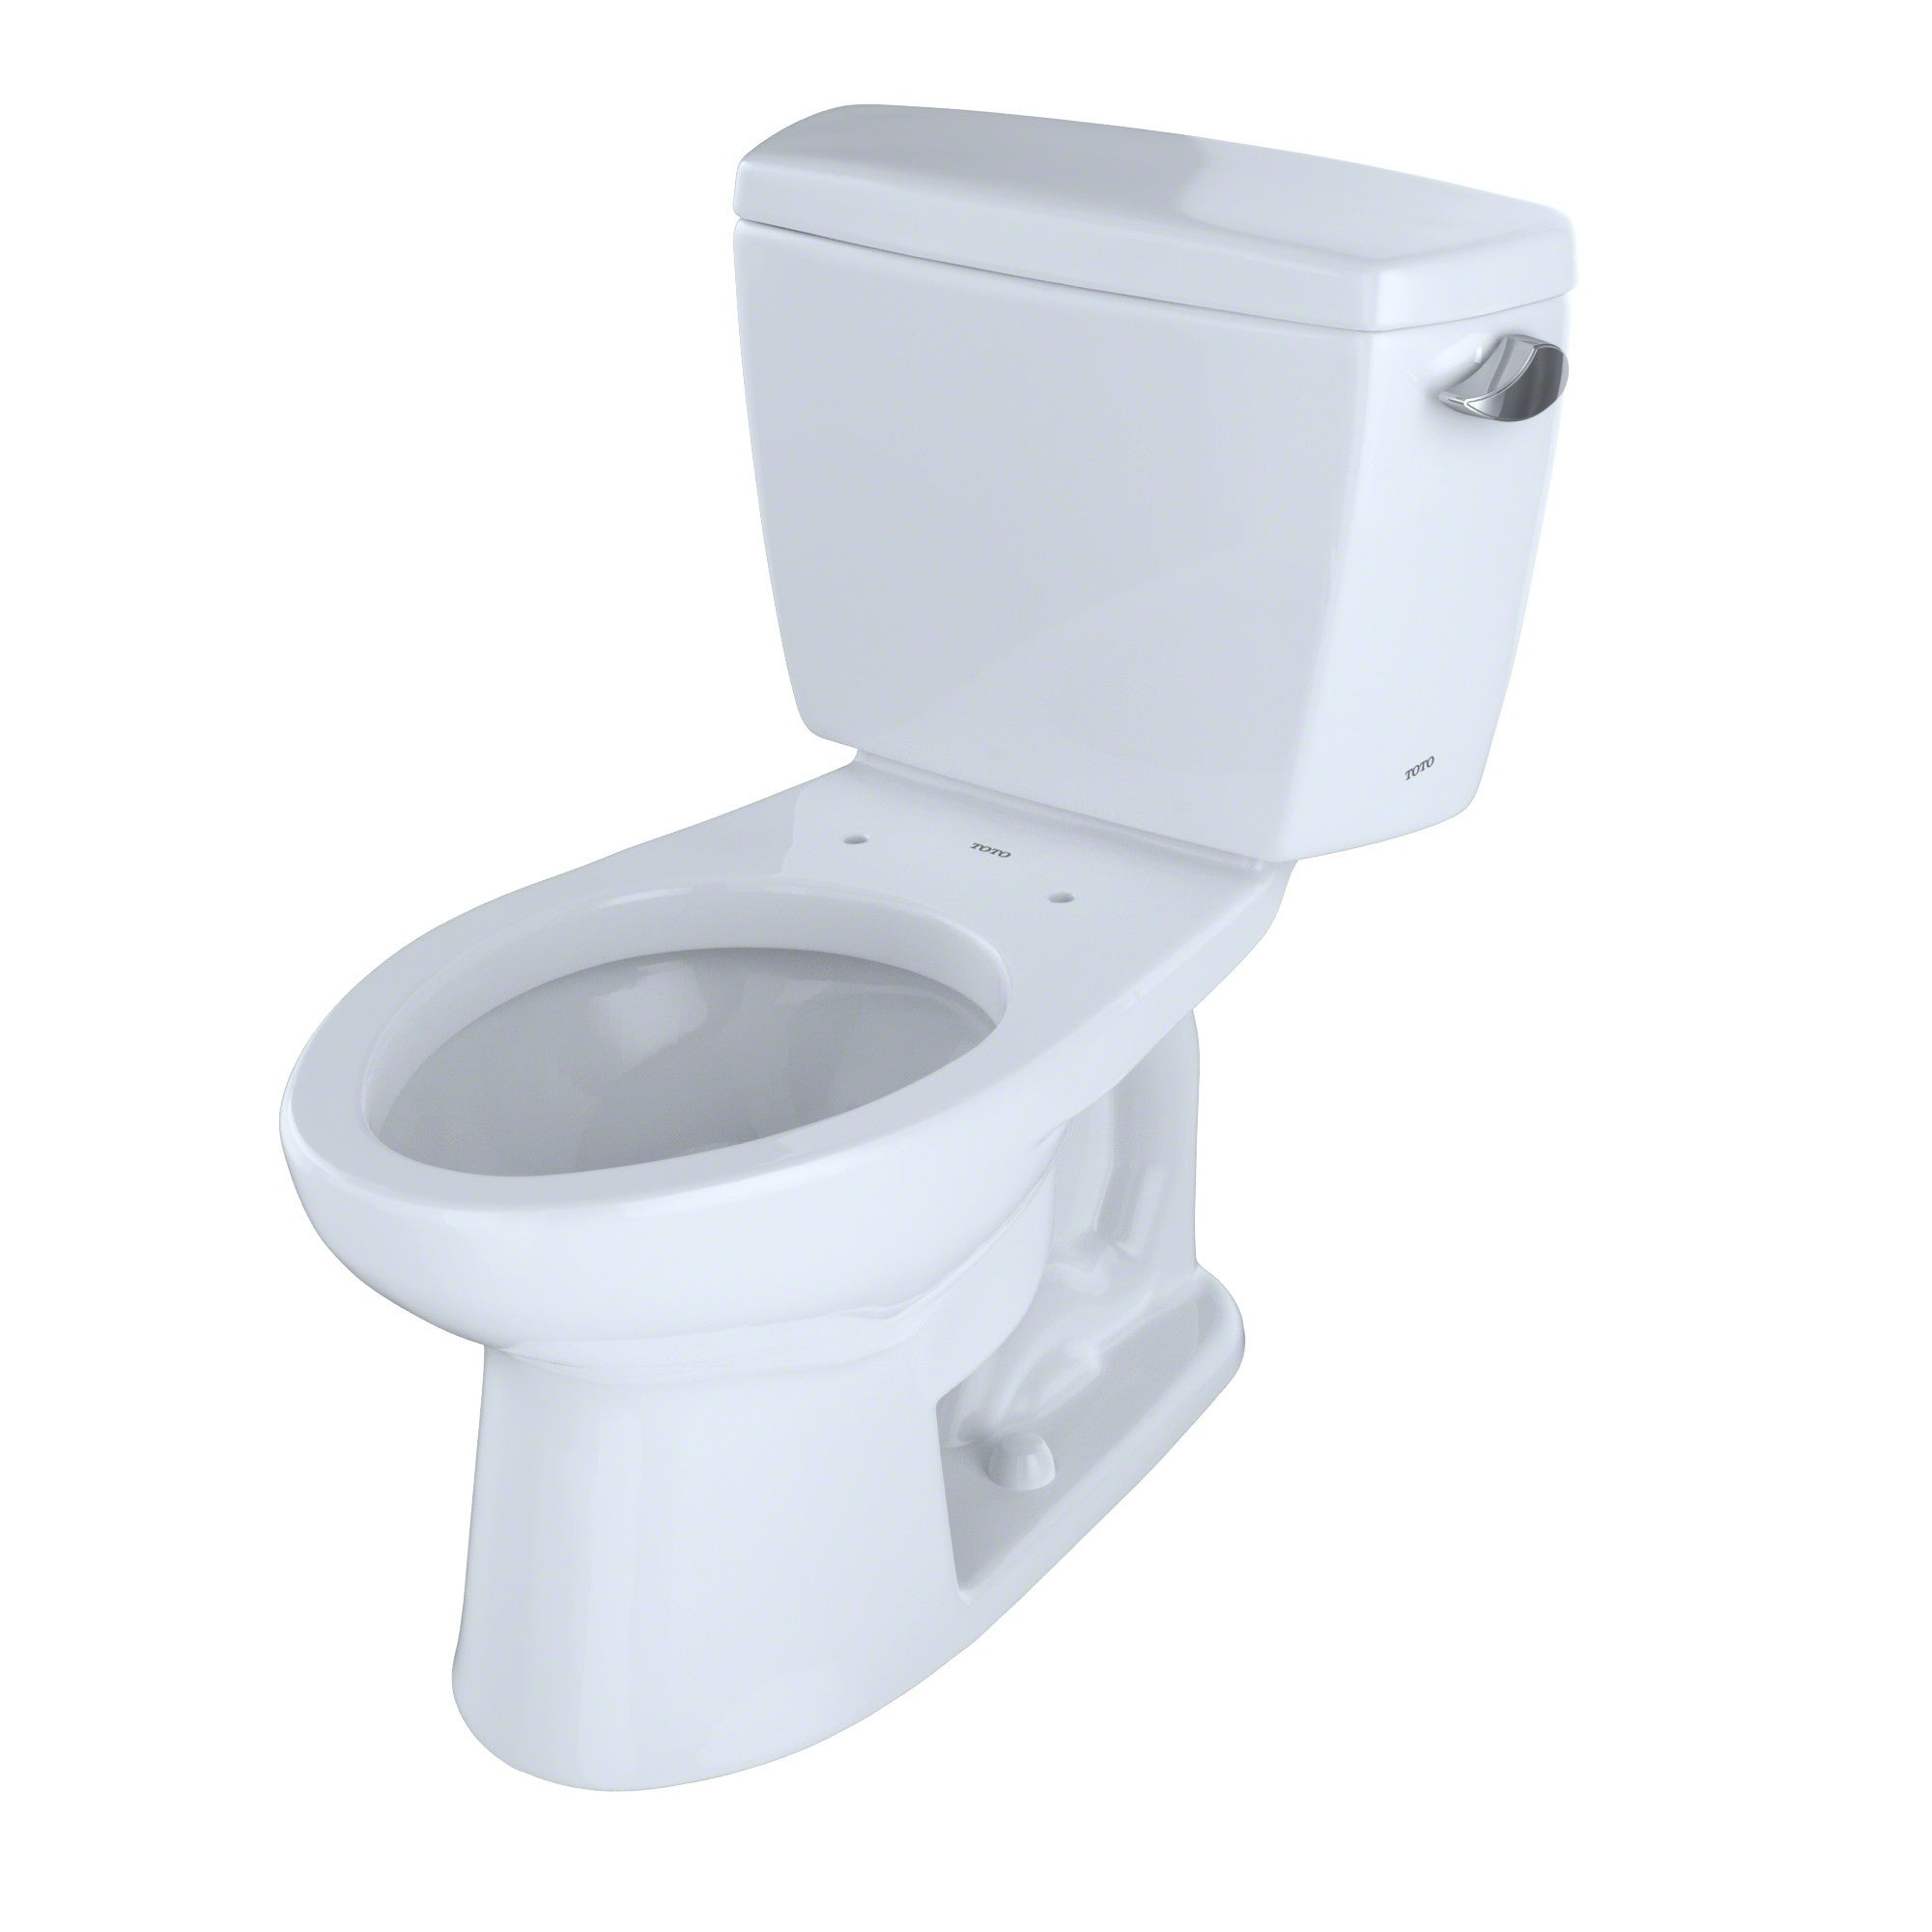 Toto Drake 2-piece Ada Toilet with Elongated Bowl and Rig...